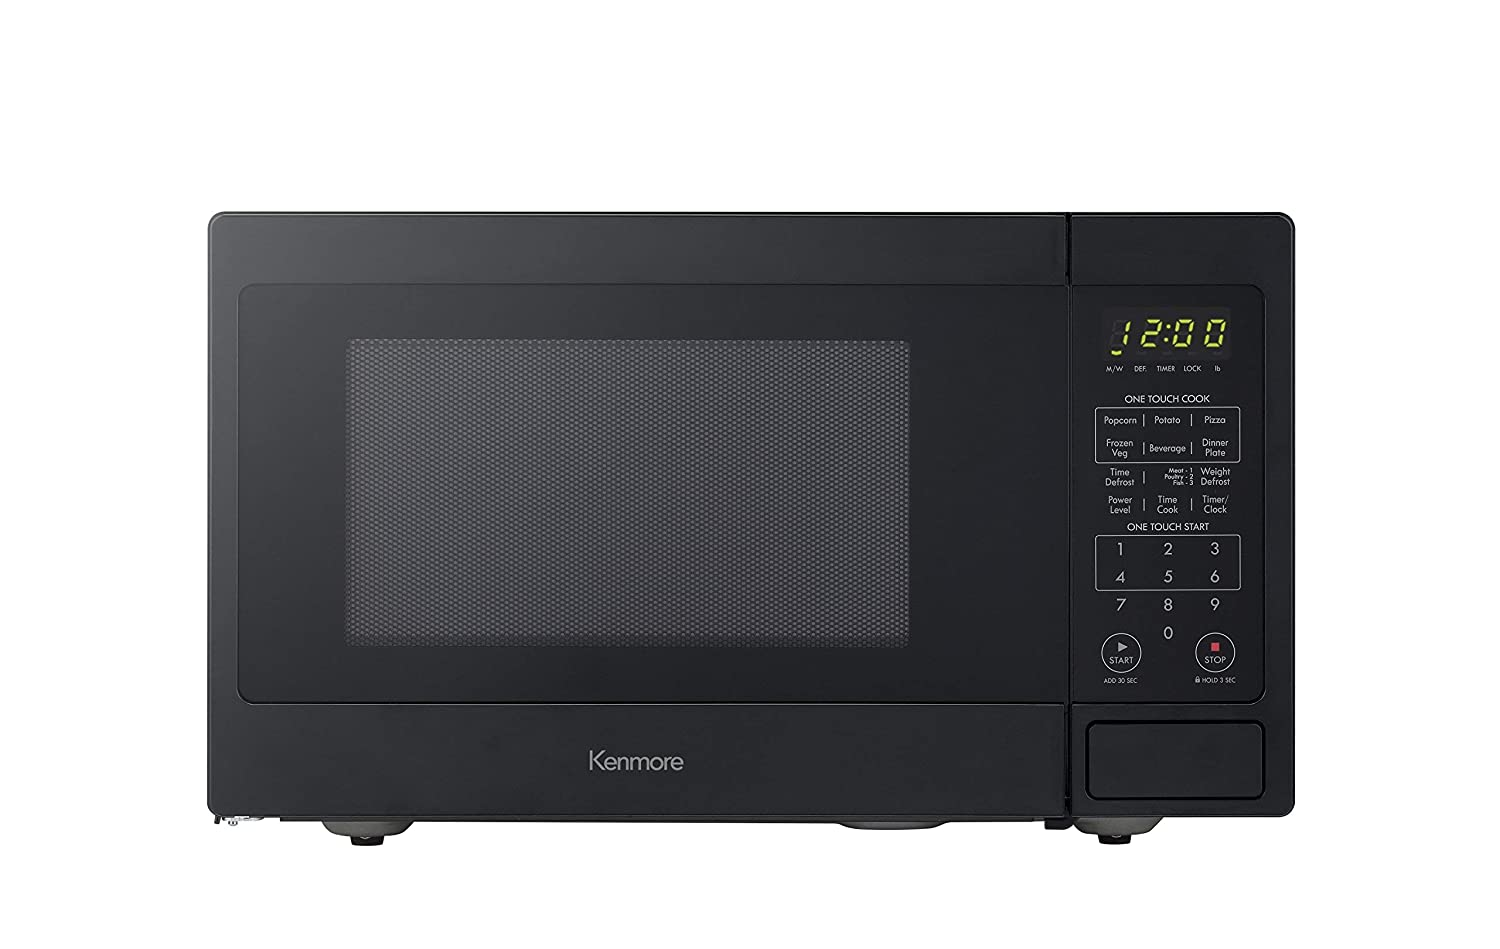 Renewed 0 9 Cu Ft Kenmore 70919 Countertop Microwave Black Small Appliances Microwave Ovens